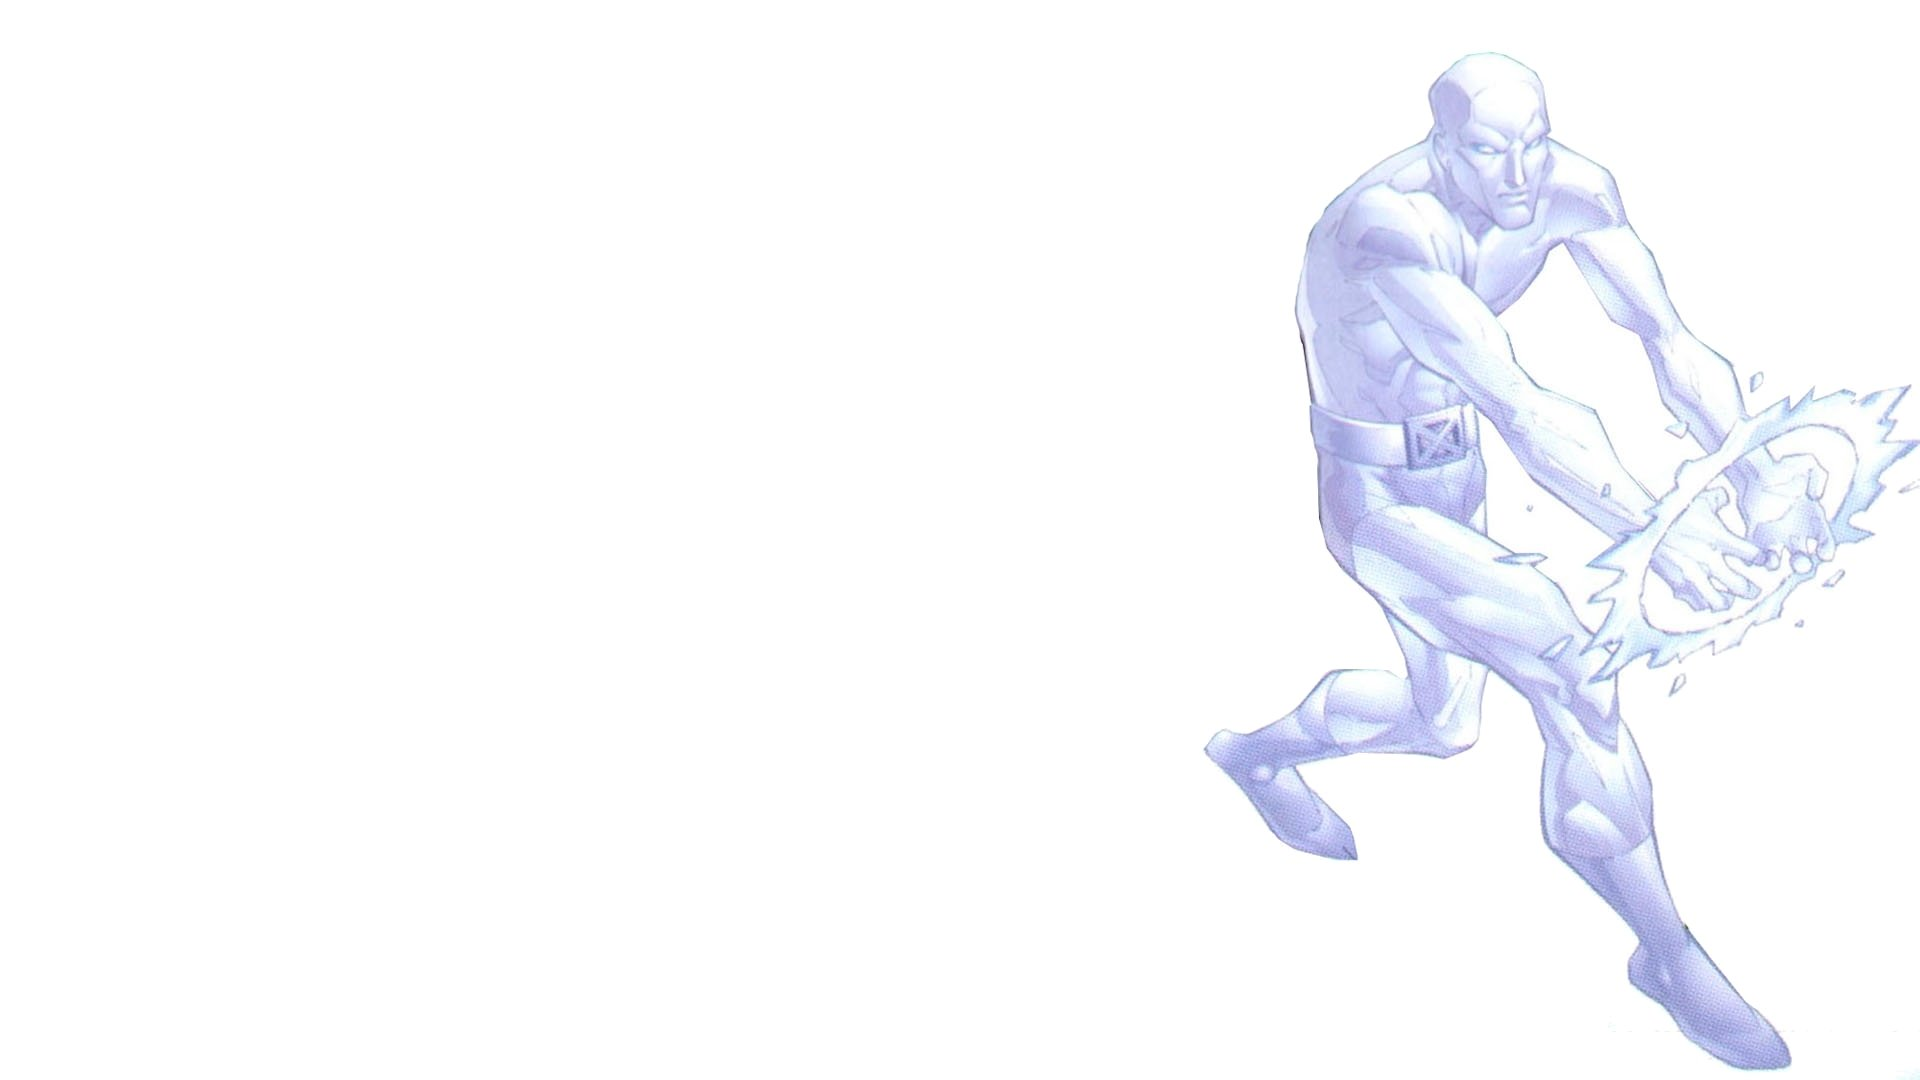 X Men Animated Series Wallpaper Iceman Full Hd Wallpaper And Background Image 1920x1080